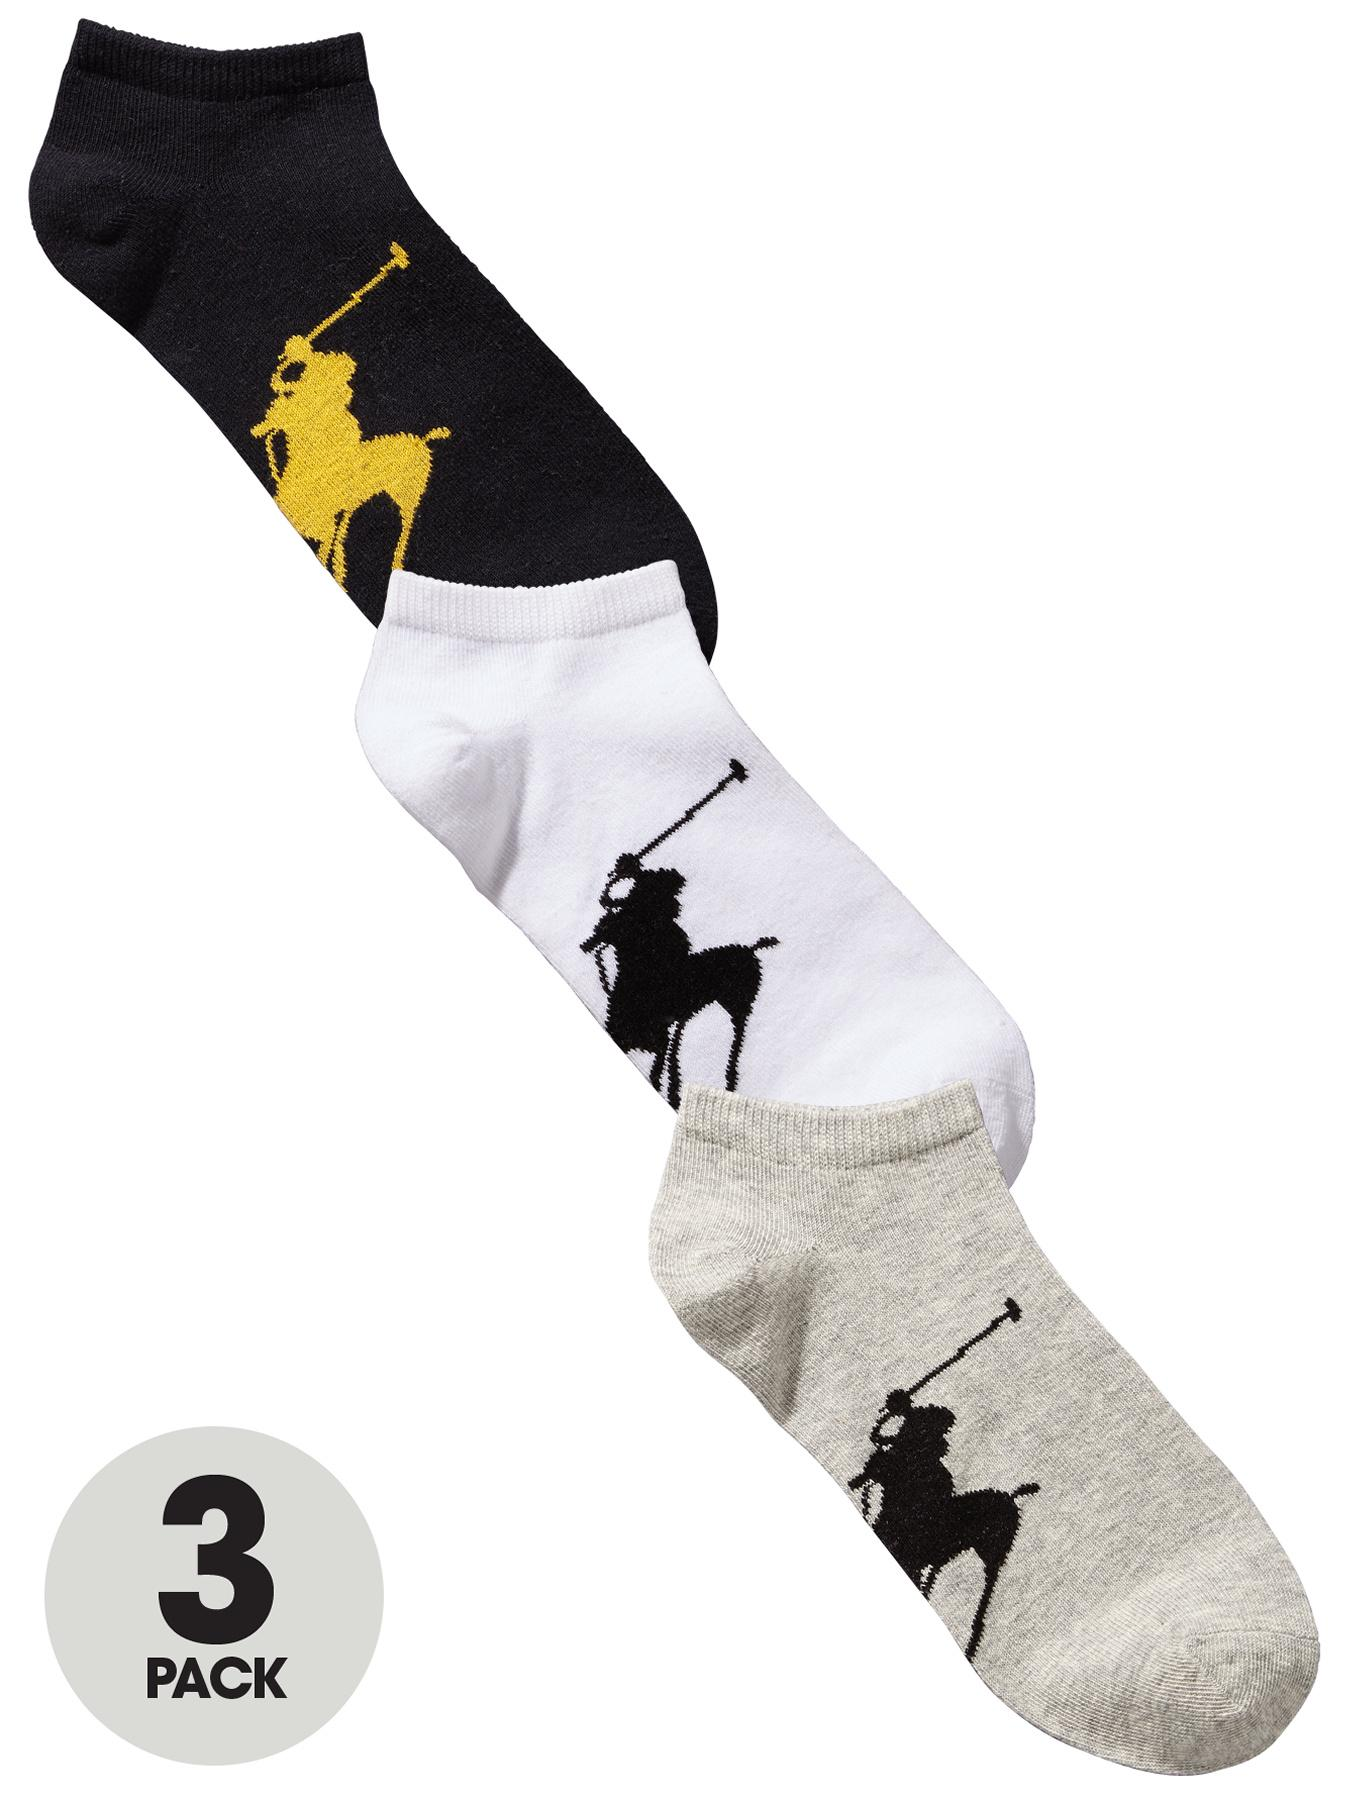 Polo Ralph Lauren Mens Trainer Socks (3 Pack) - Black, Black